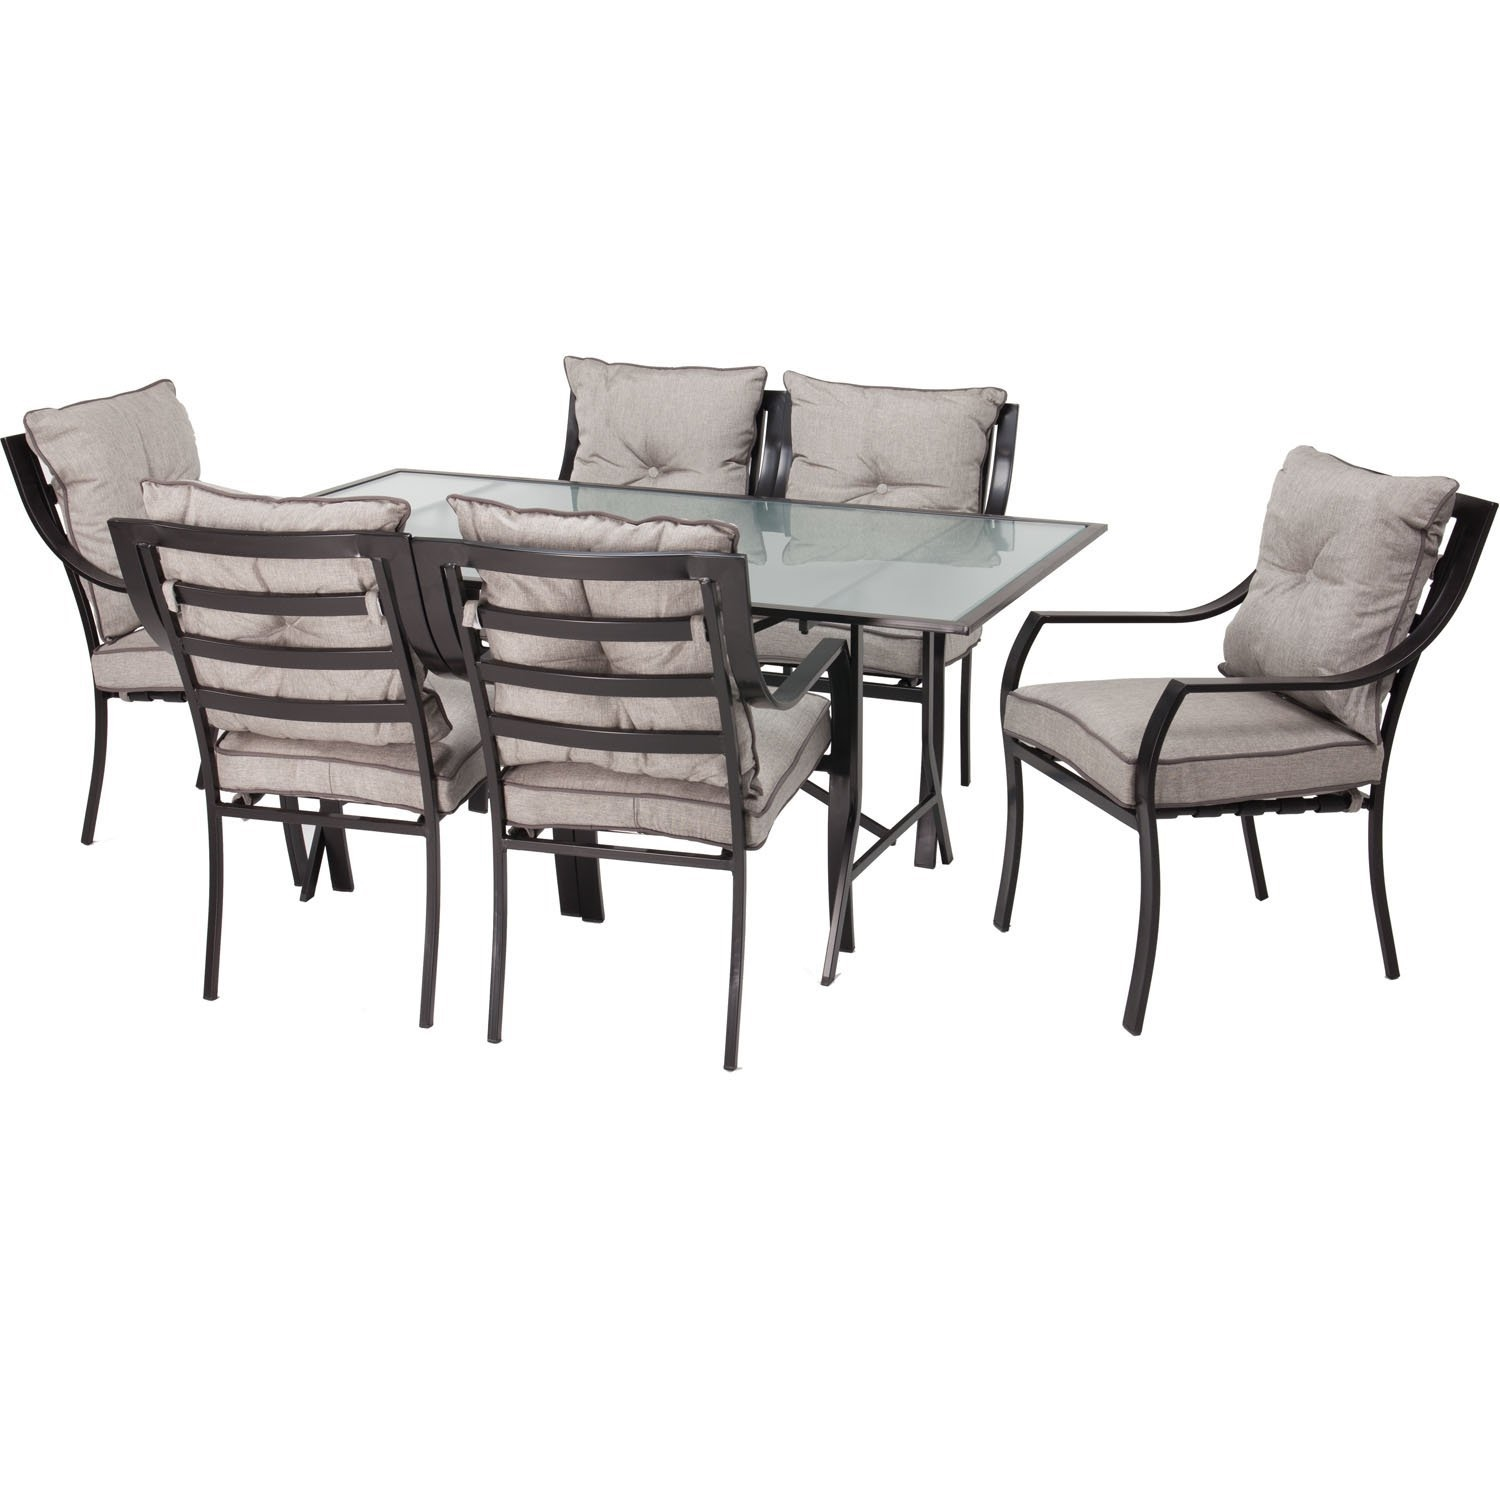 Metal outdoor dining furniture - 7piece Outdoor Patio Furniture Metal Dining Set With Cushions